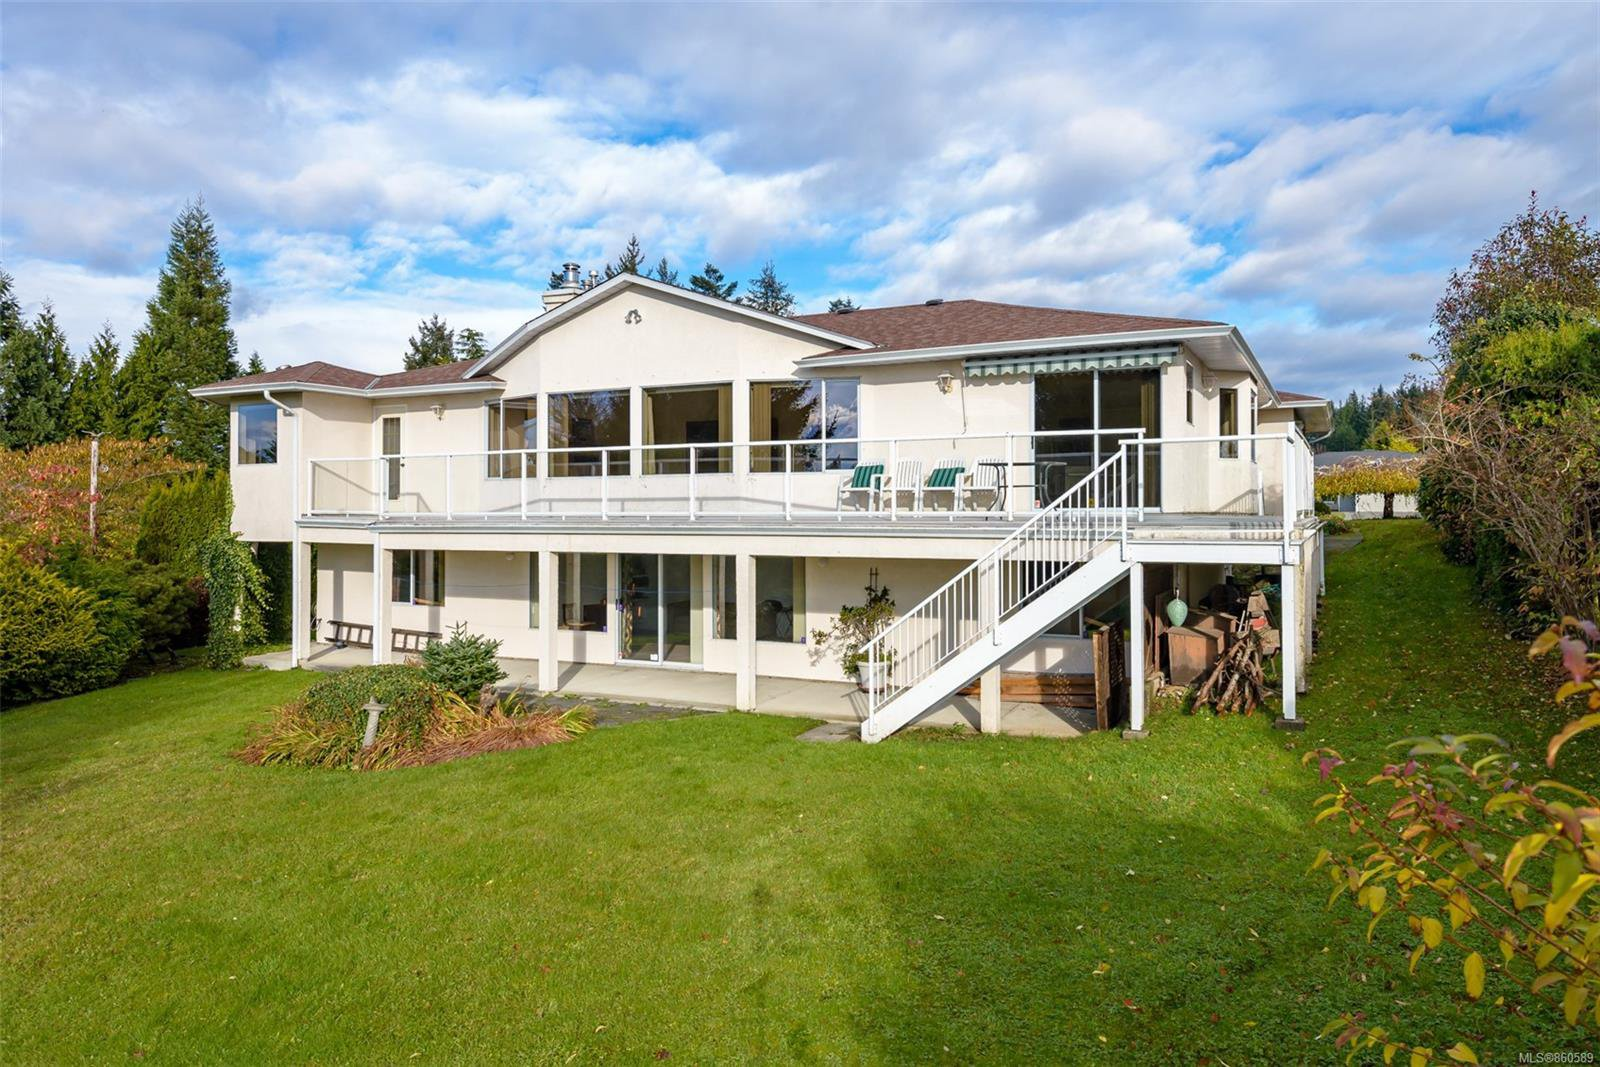 Main Photo: 230 Carmanah Dr in : CV Courtenay East House for sale (Comox Valley)  : MLS®# 860589